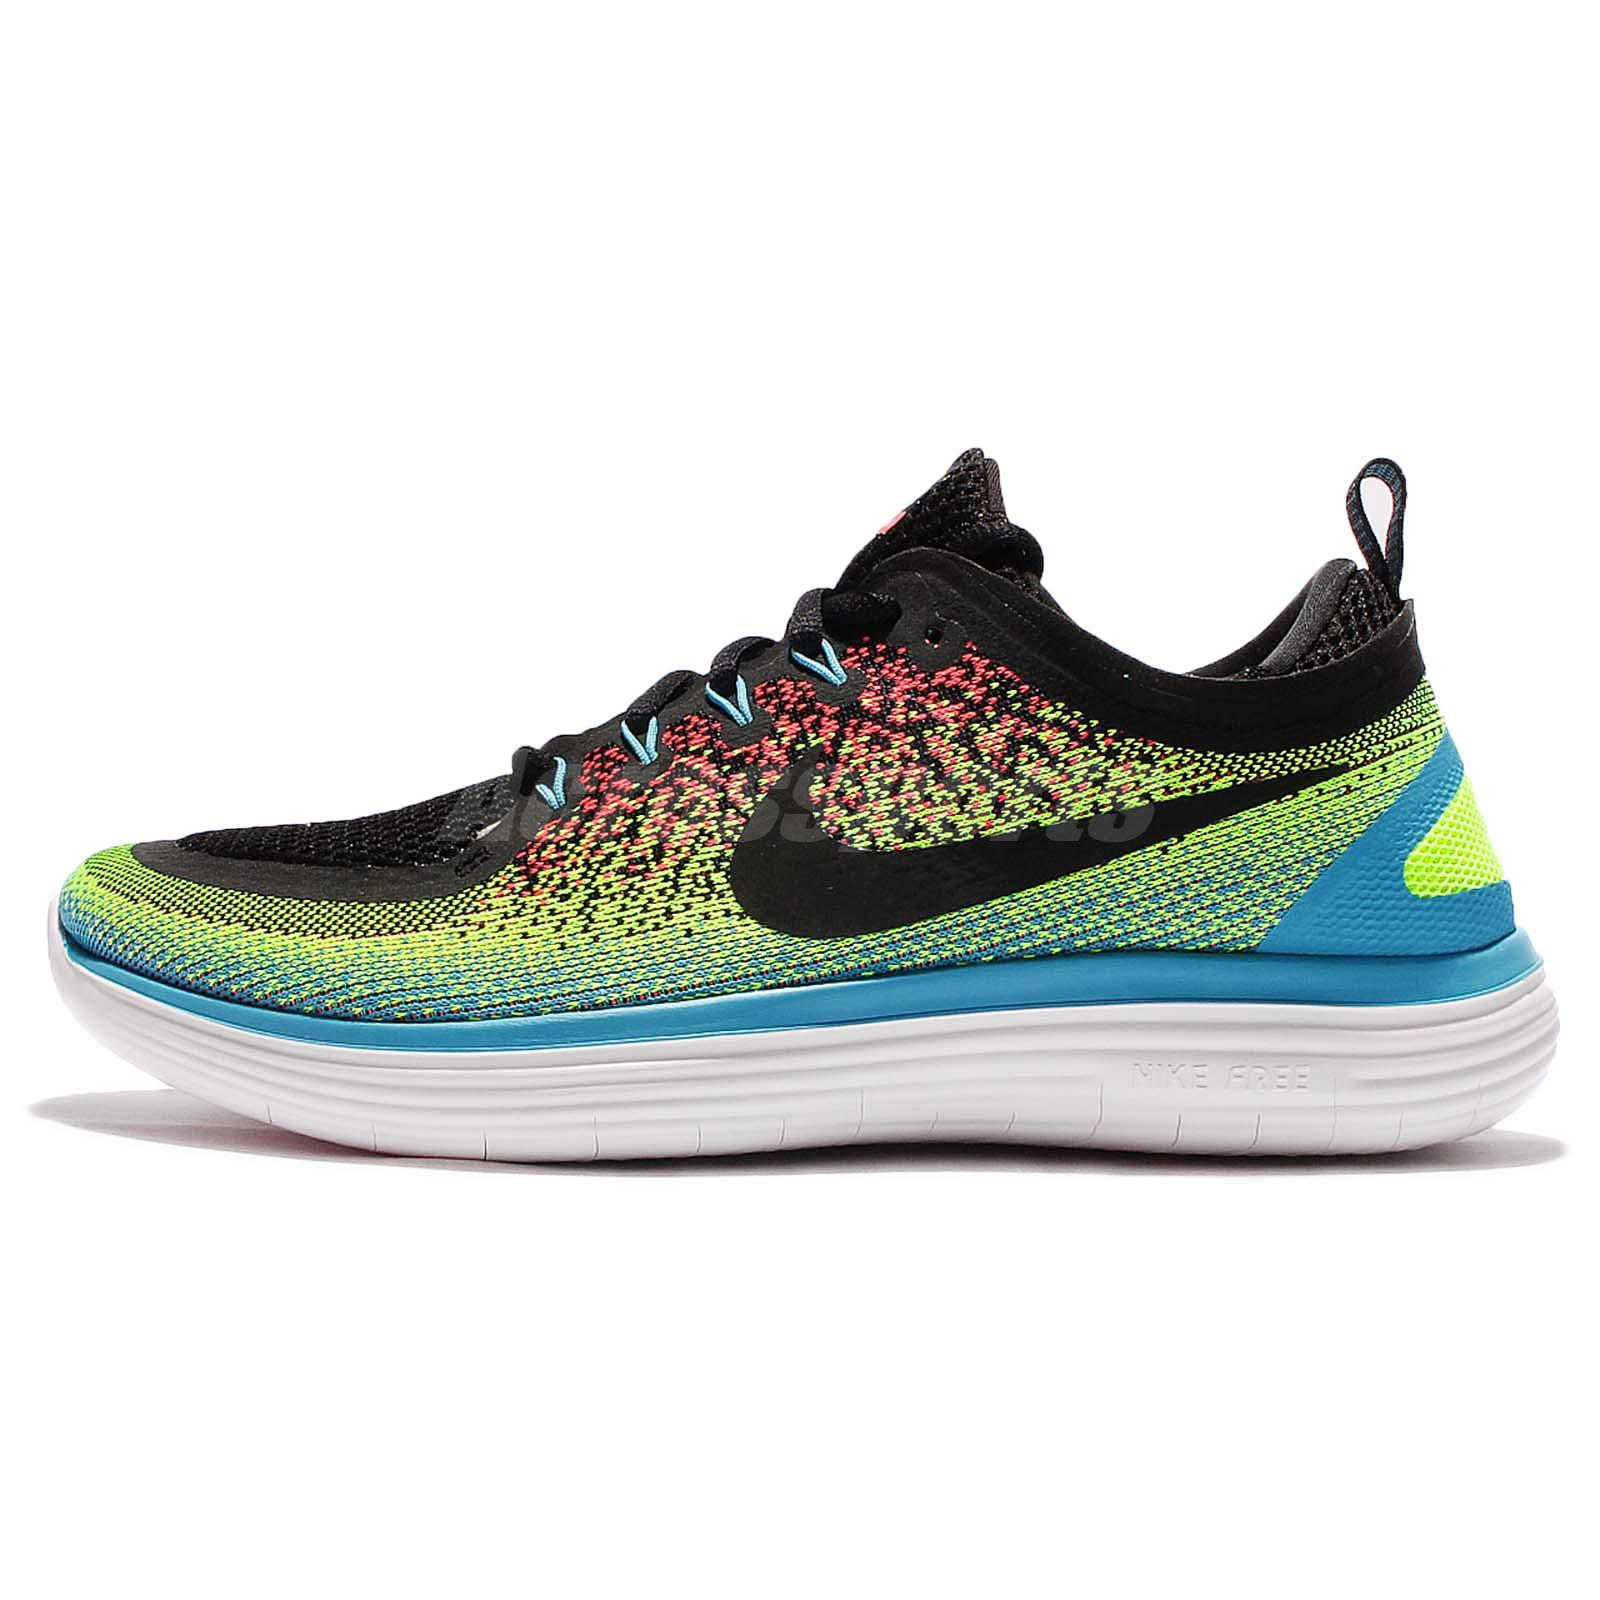 ... Nike Free RN Distance 2 II Run Multi-Color Men Running Shoes Sneakers  863775- ...